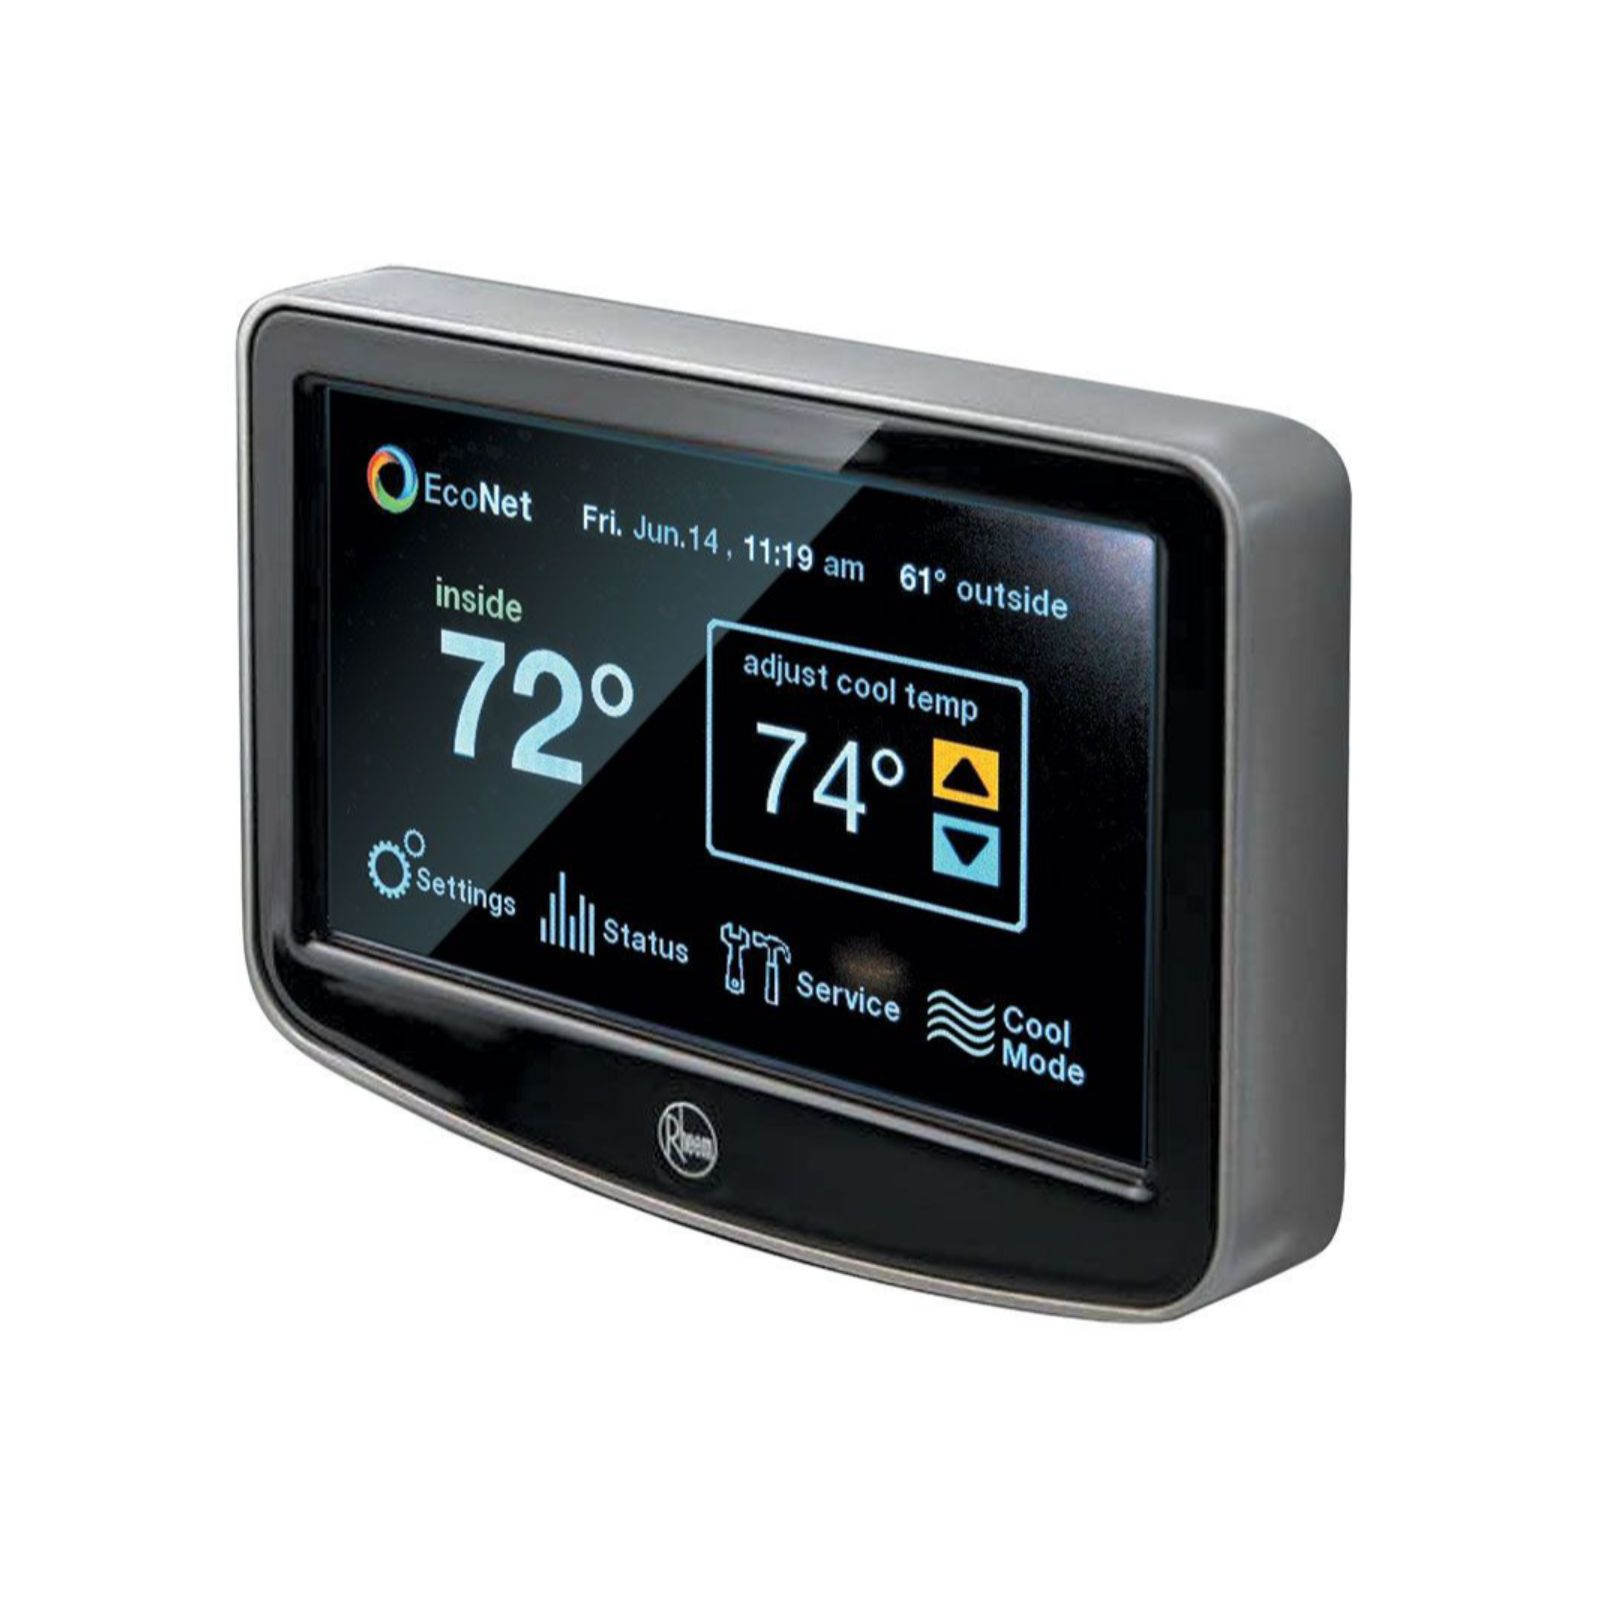 Rheem RETST601SYS - EcoNet Control Center - Home Control With Intuitive LCD Touchscreen Navigation